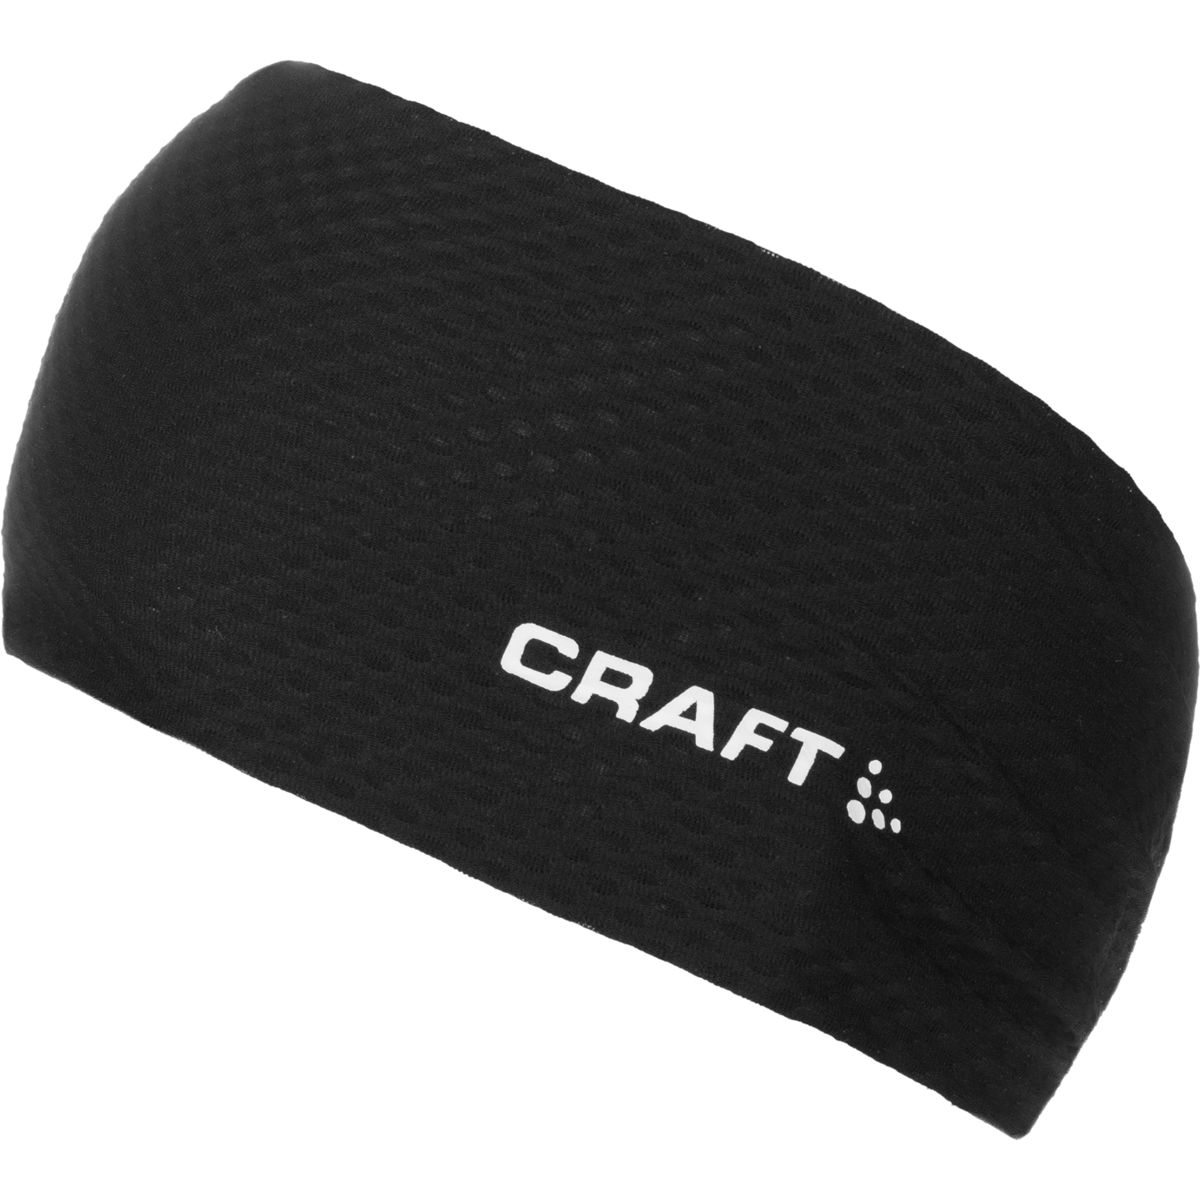 Craft cool mesh superlight headband competitive cyclist for Craft cool mesh superlight headband